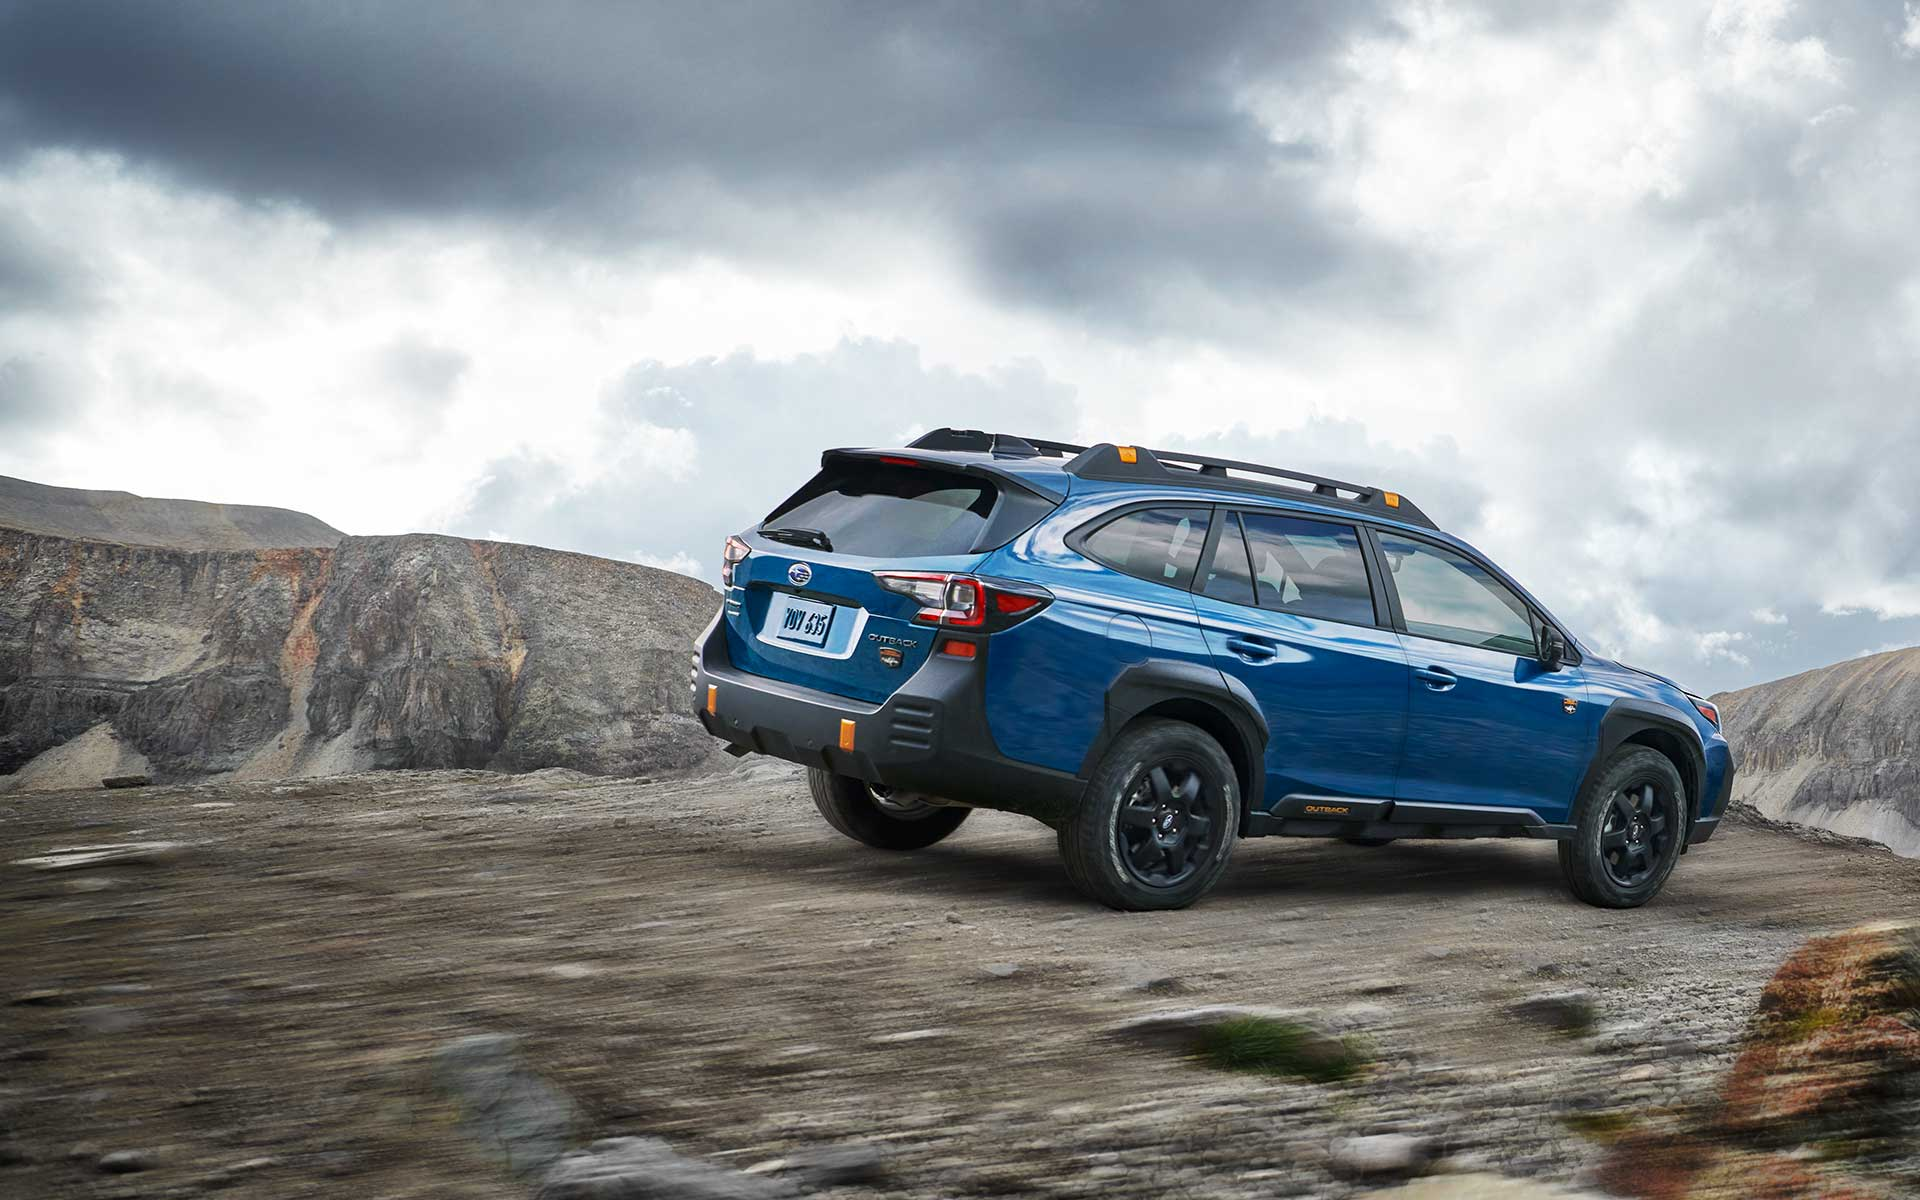 2022 Subaru Outback Wilderness driving down a rocky incline.